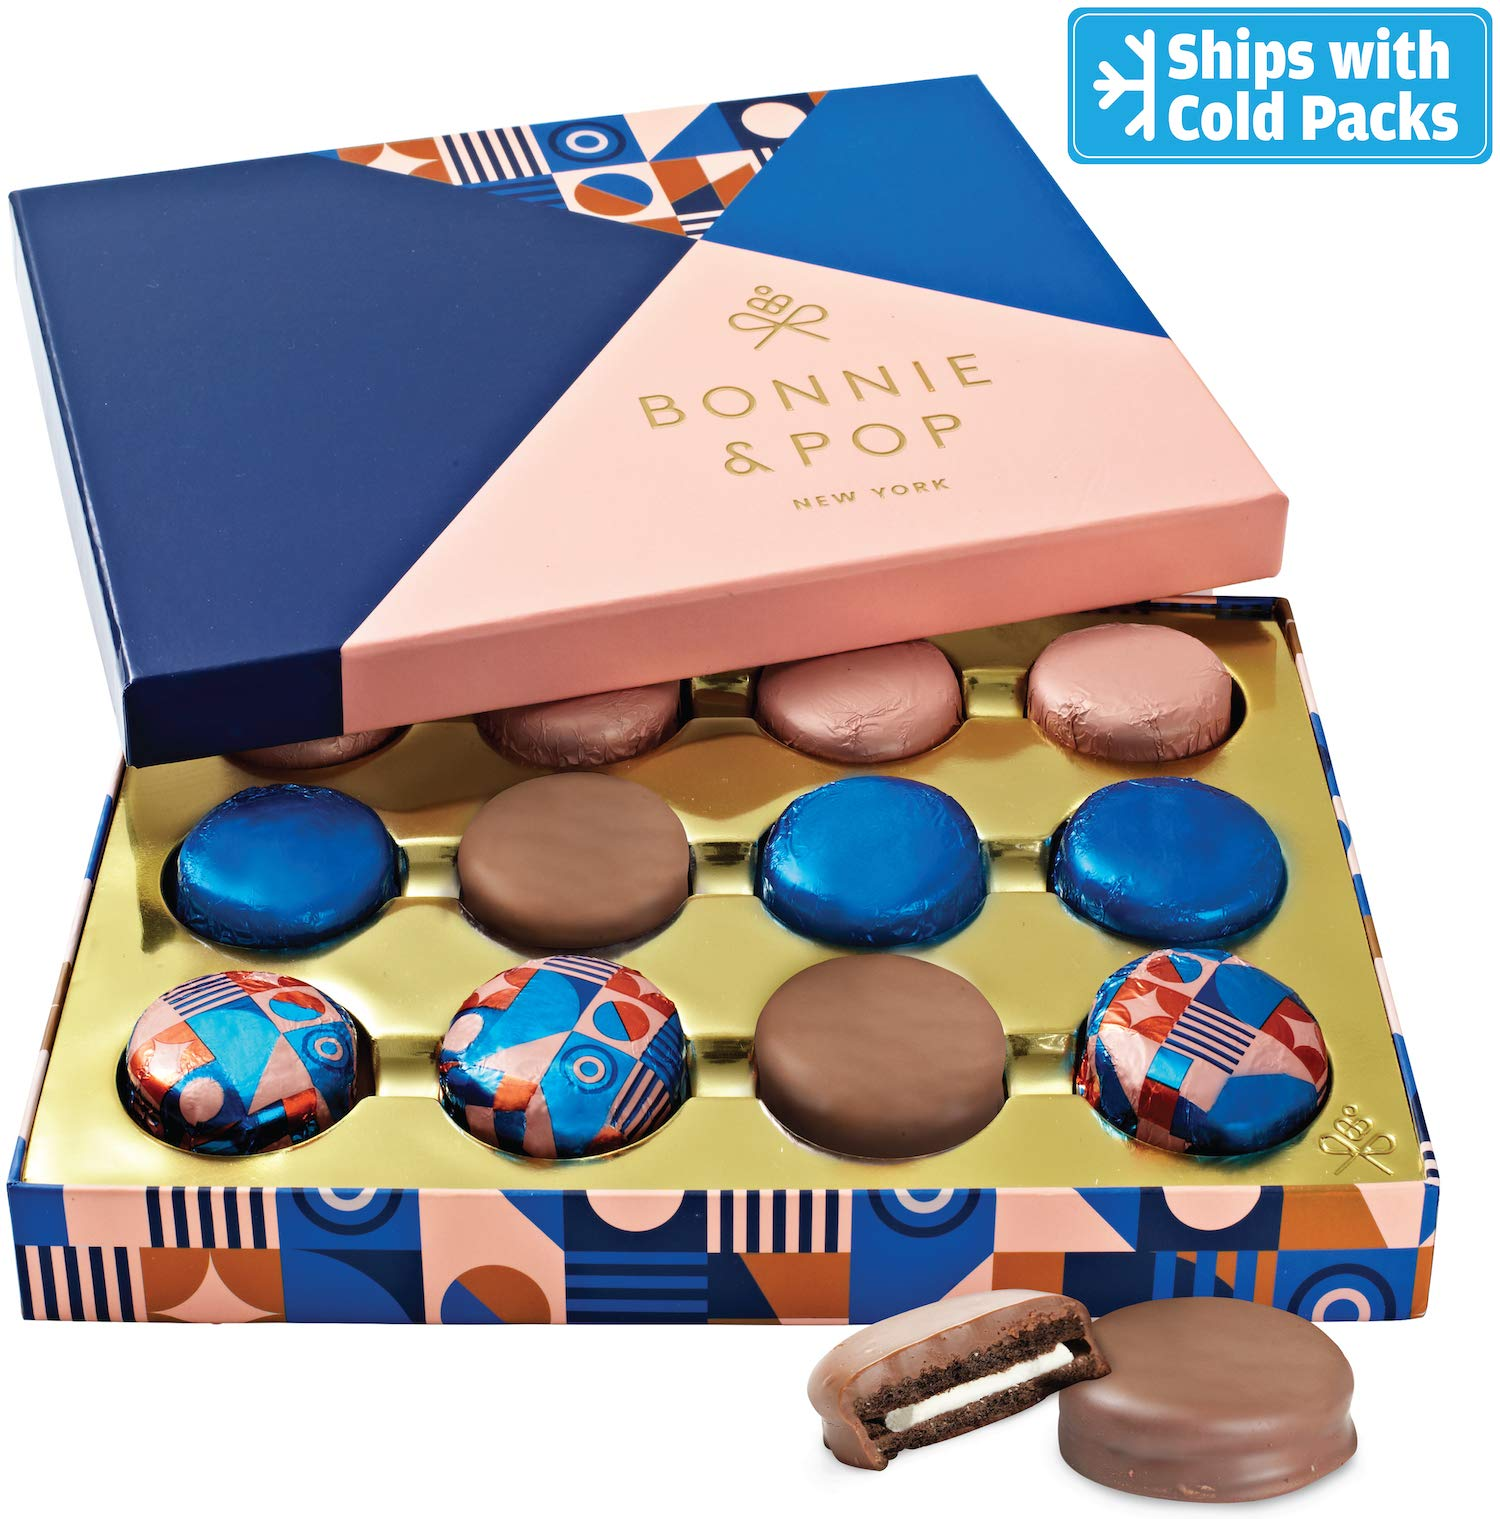 Bonnie & Pop's Chocolate Cookies Gift Basket, Gift Box Assortment, Dark, Milk and Dairy Chocolate, Gift Box, Holiday Food Sandwich Cookies, Prime Christmas Elegant Box Gifts for Women and Men